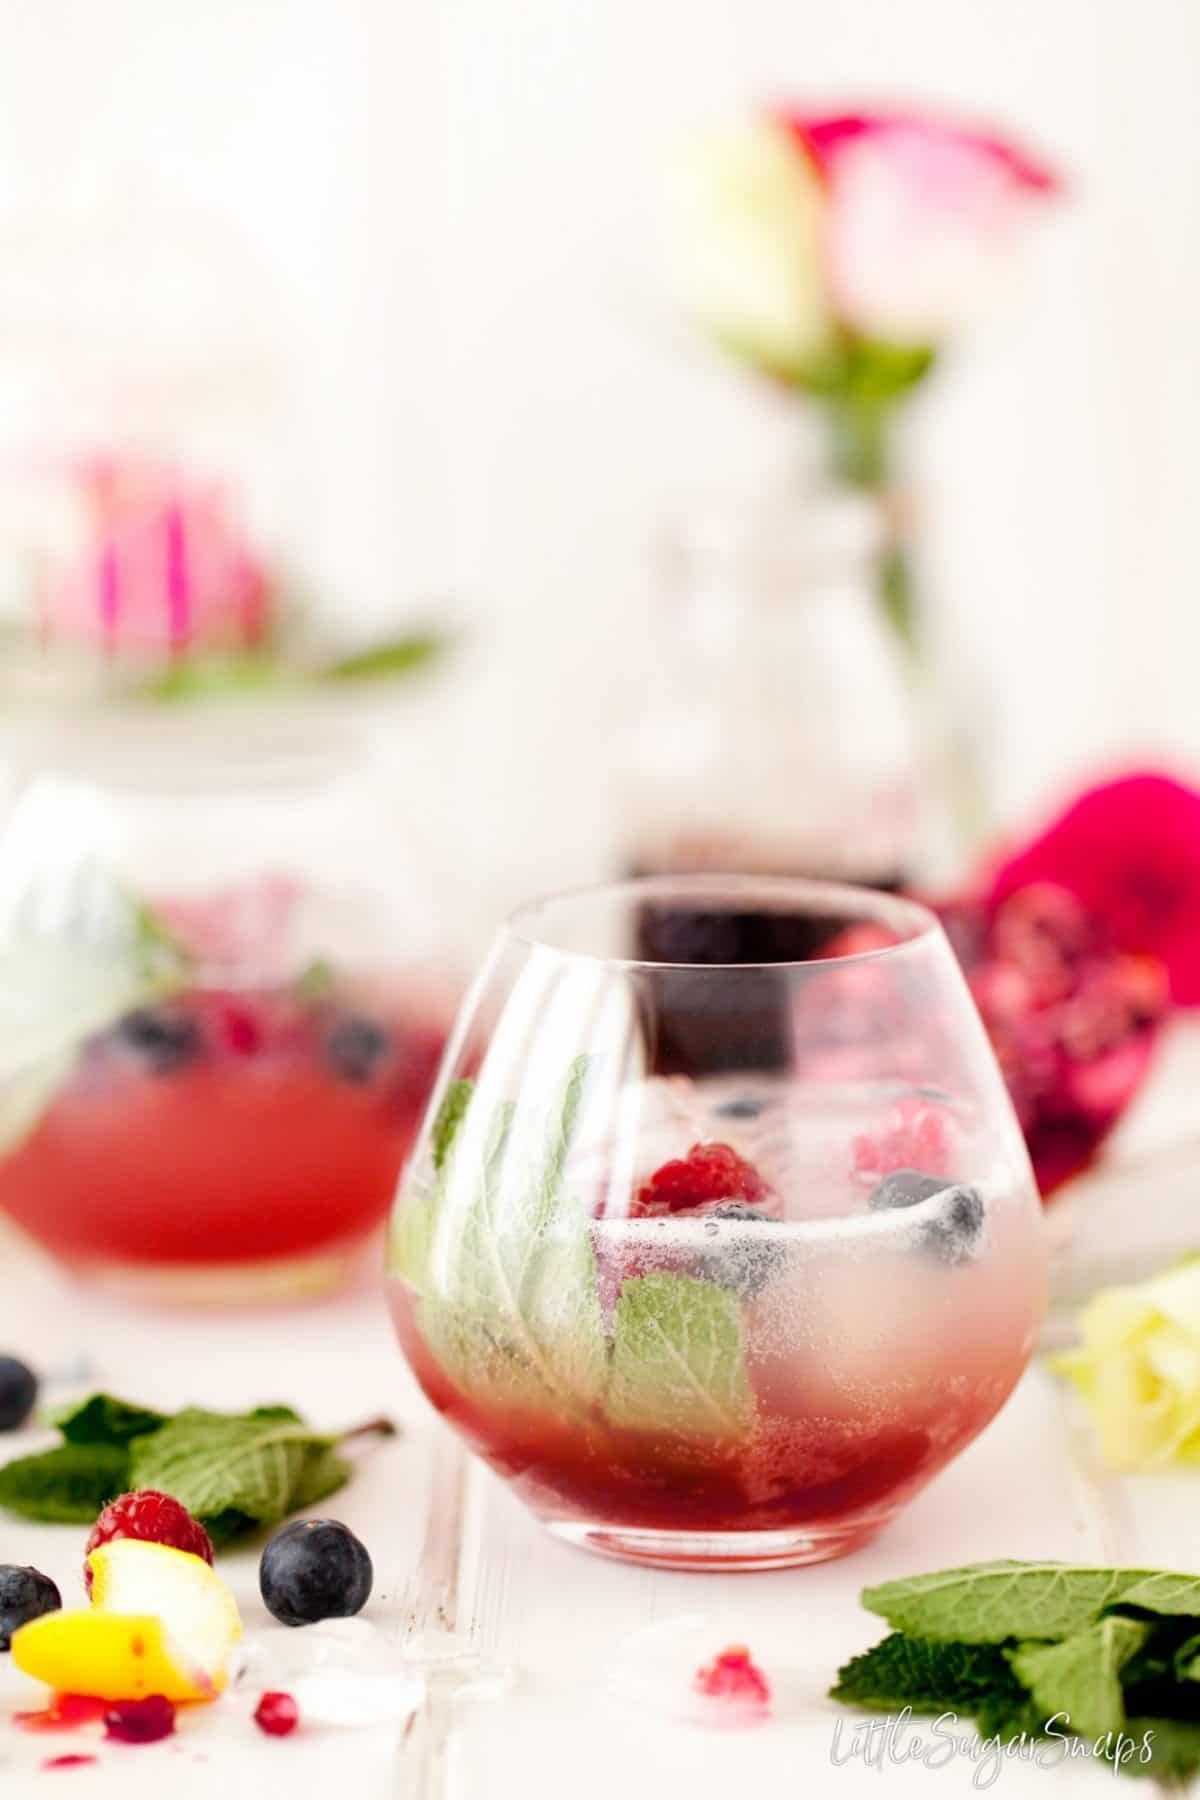 A fruity drink made with grenadine and garnished with mint and berries.